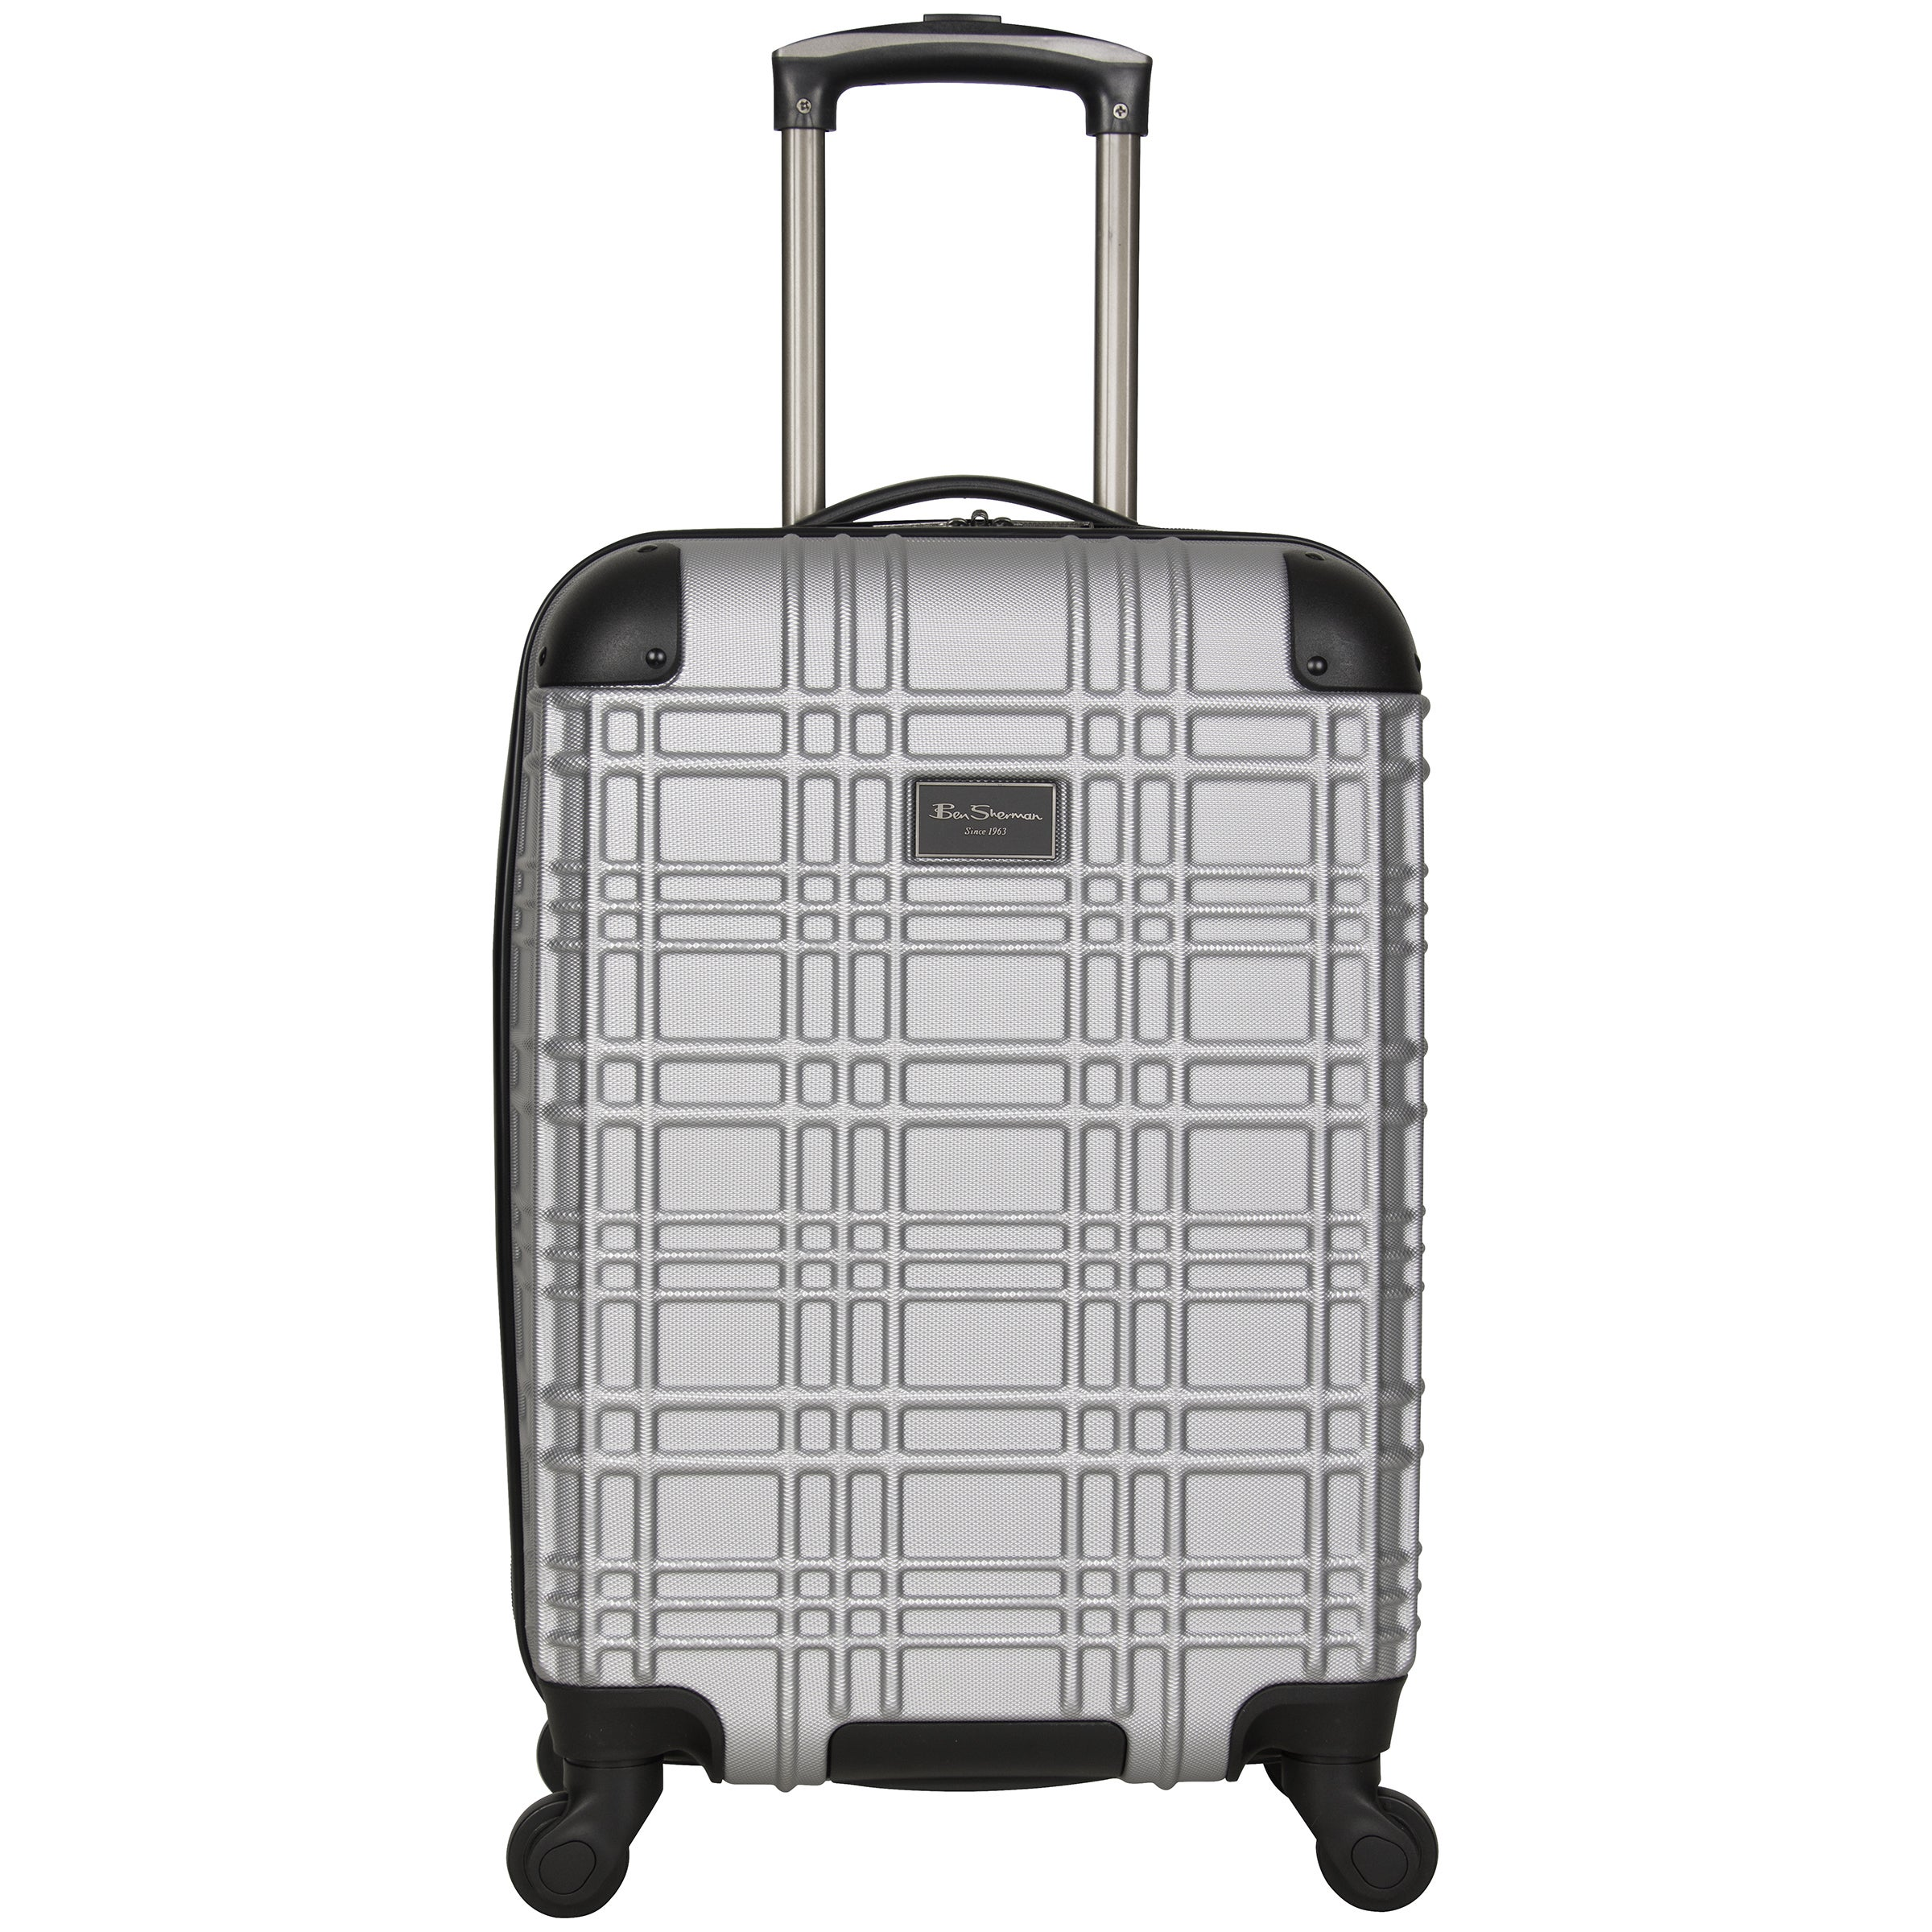 a2f11c170c17 Ben Sherman 'Nottingham' 20-inch Lightweight Hardside 4-Wheel Spinner  Carry-On Suitcase